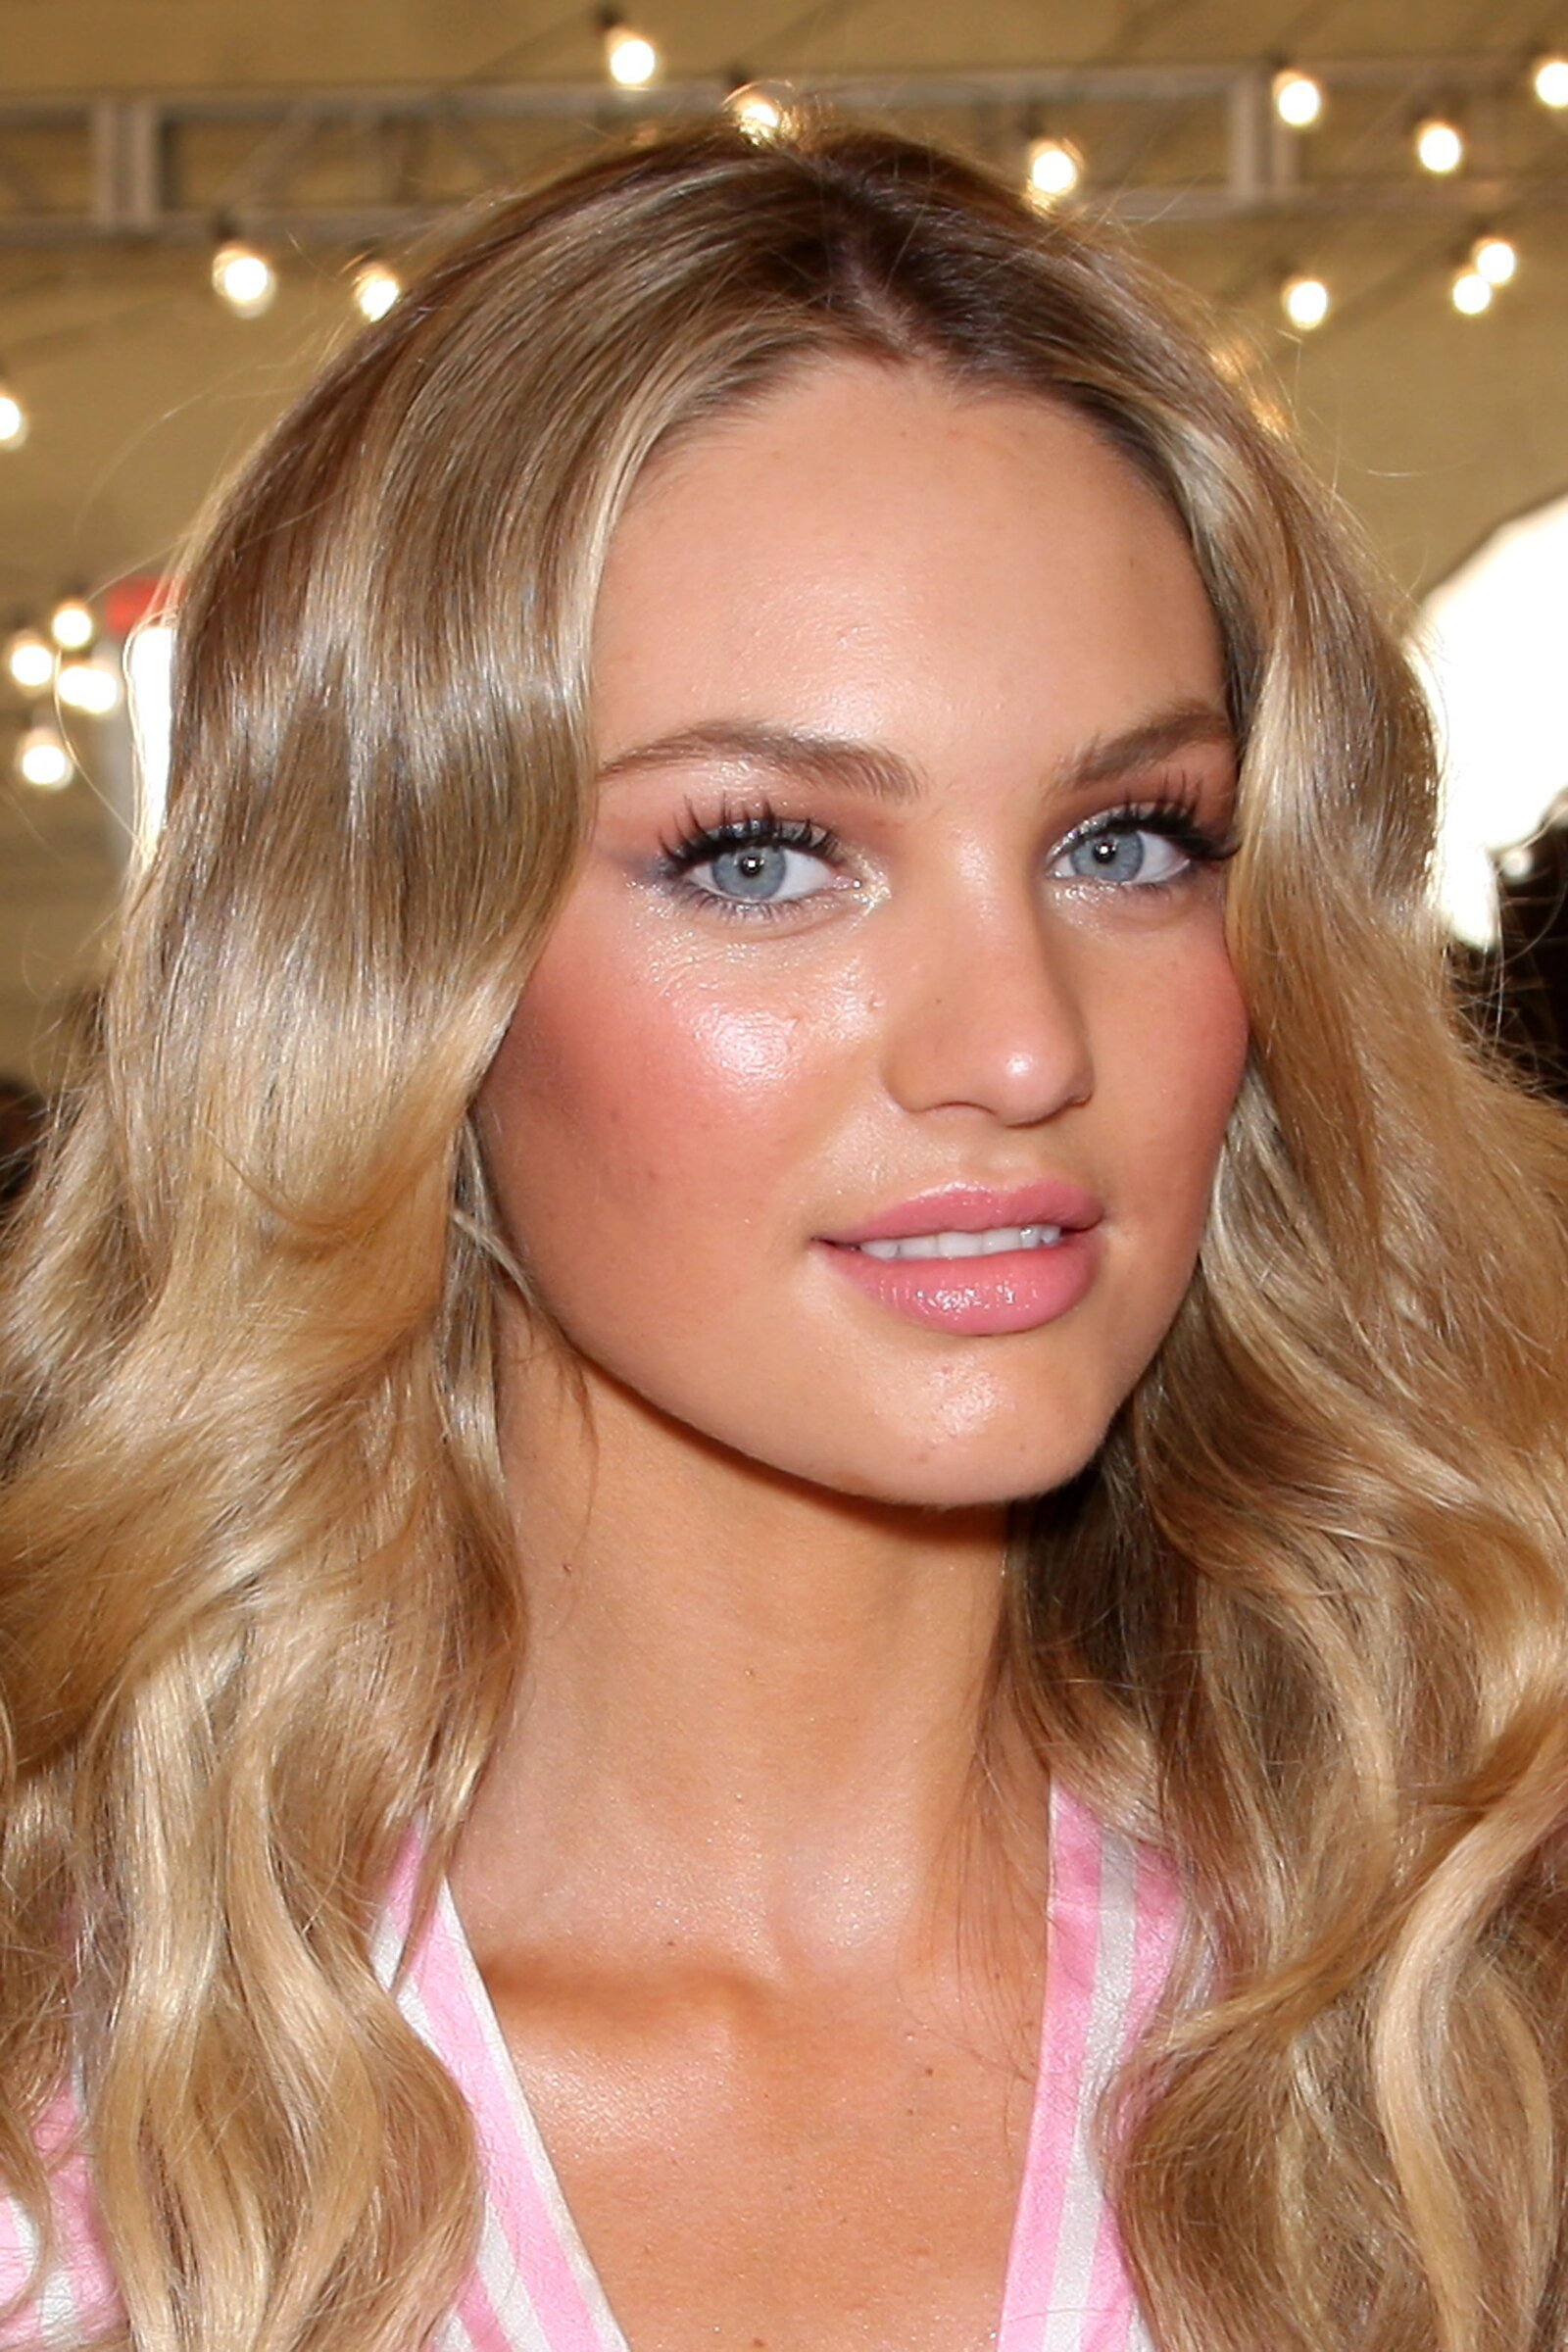 Ever wonder what Victoria's Secret Models look like without make-up?